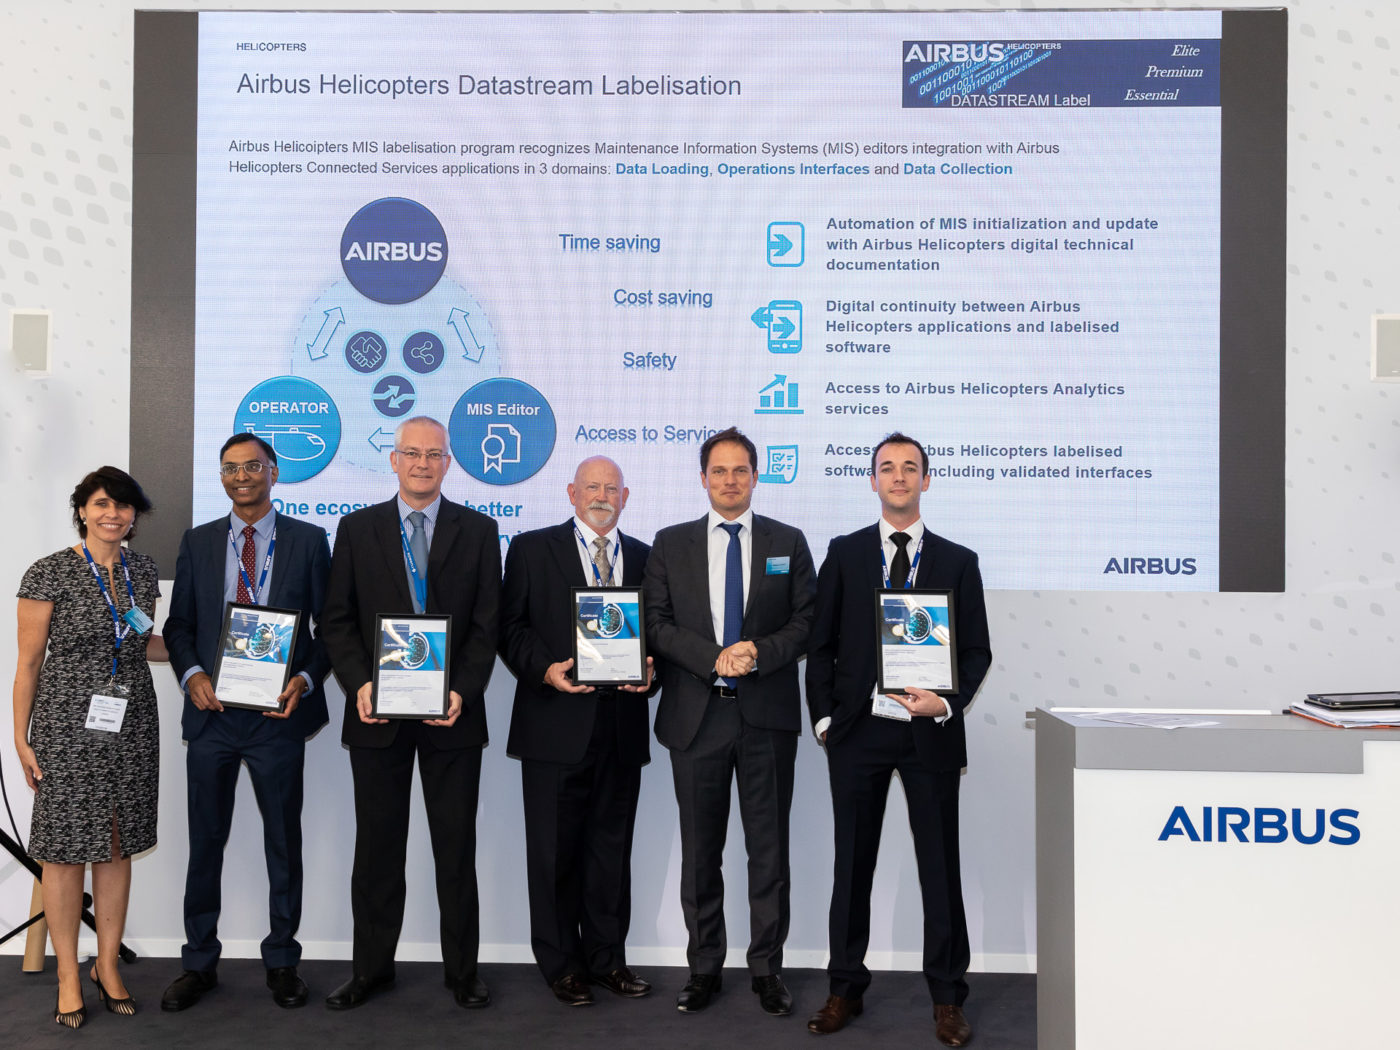 MRO software providers team up with Airbus to exchange maintenance data digitally